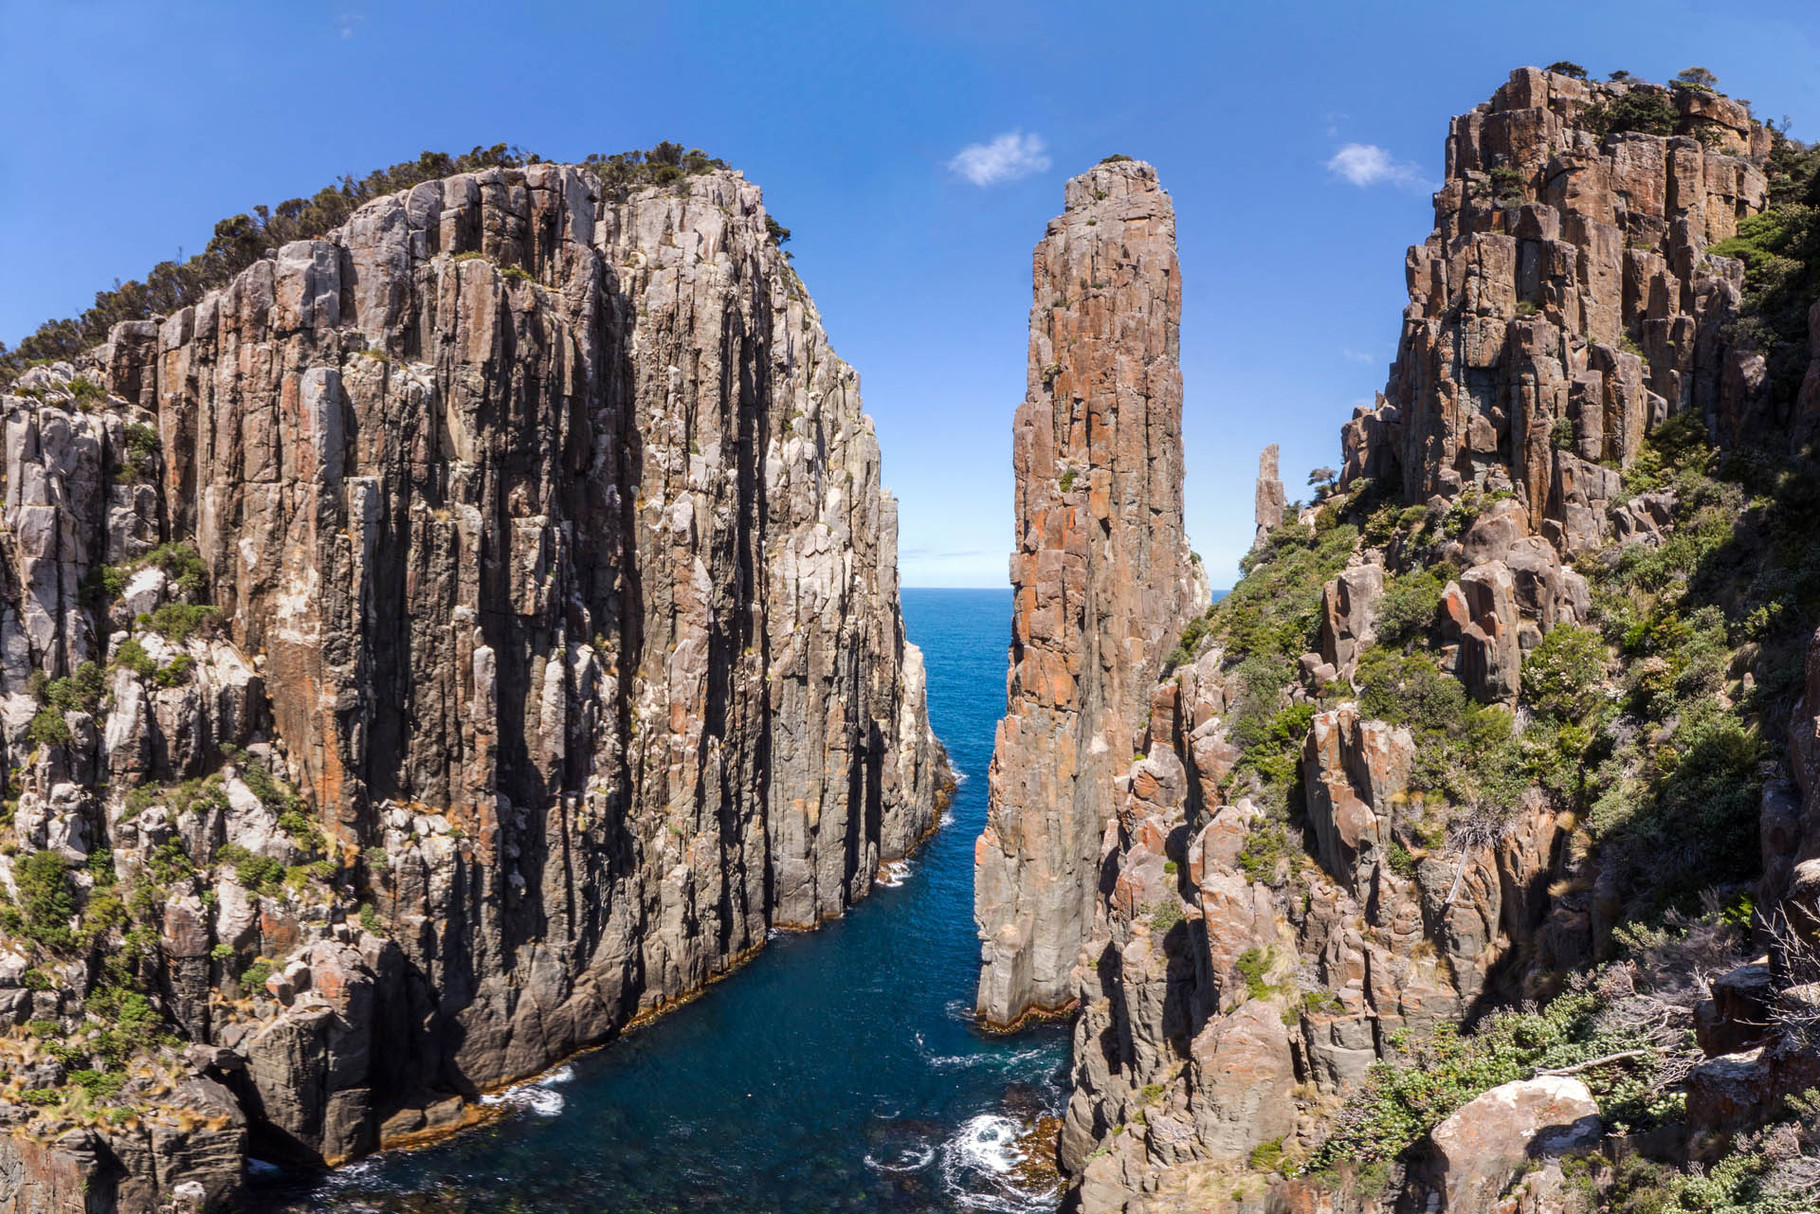 Tasman National Park, Cape Hauy: Candlestick and Totem pole